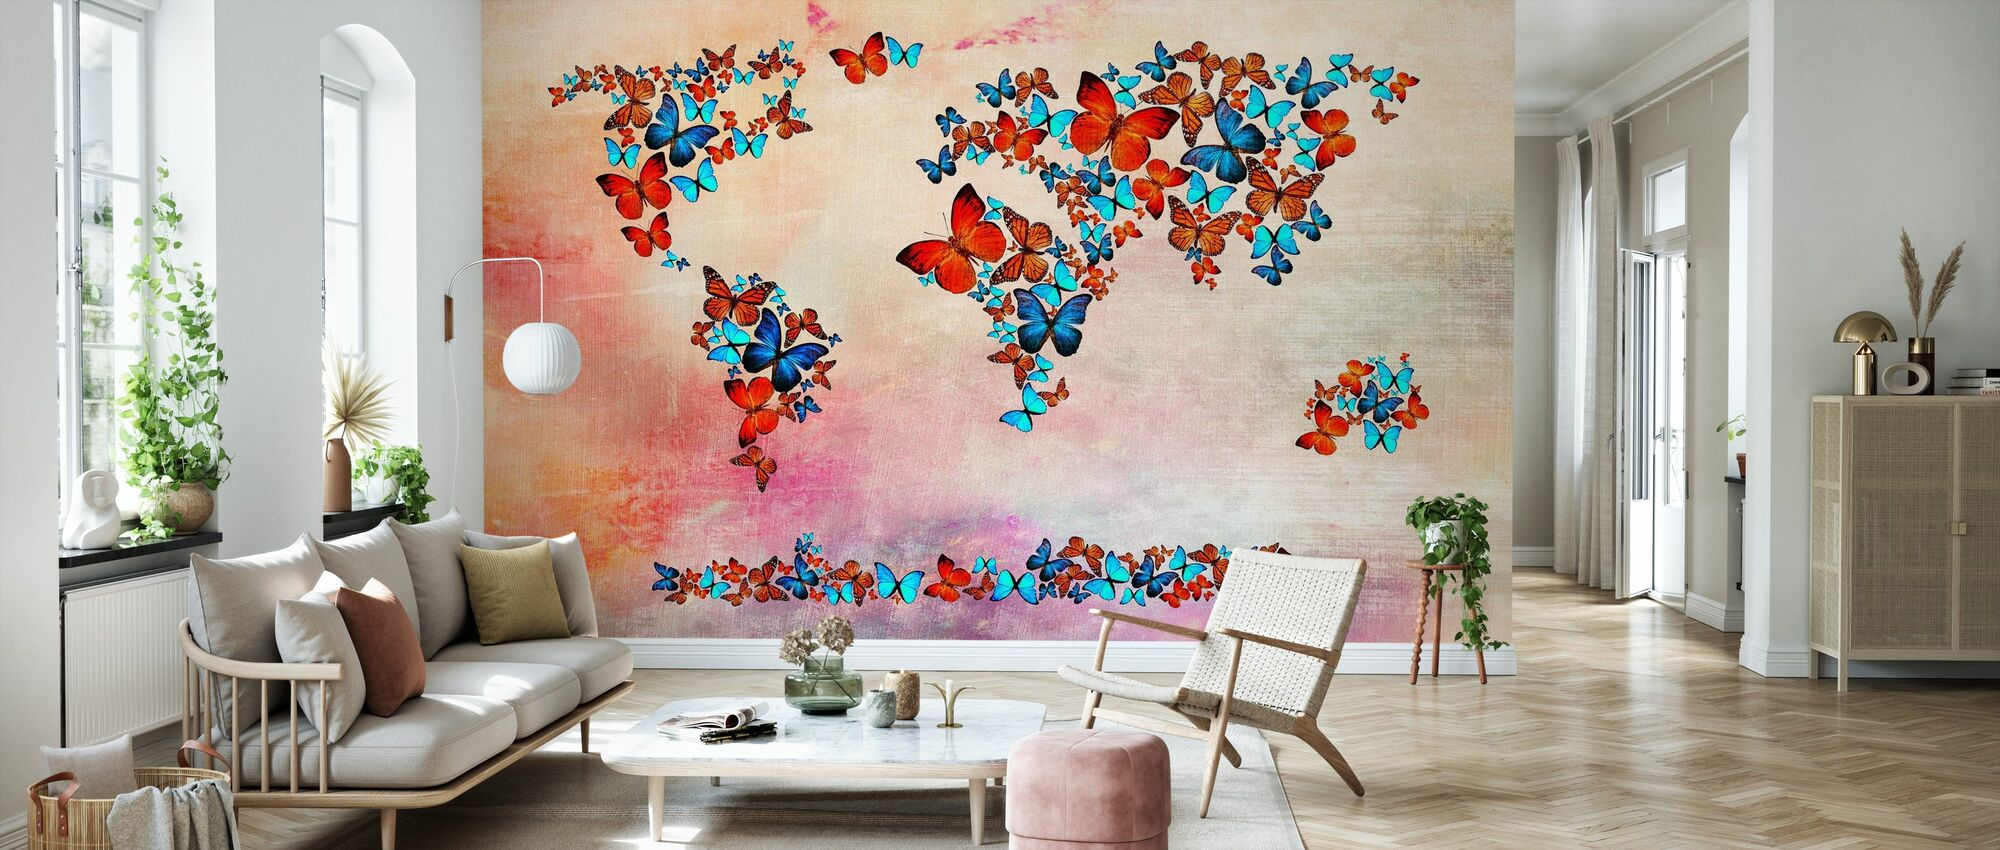 Butterflies Forming World Map - Wallpaper - Living Room